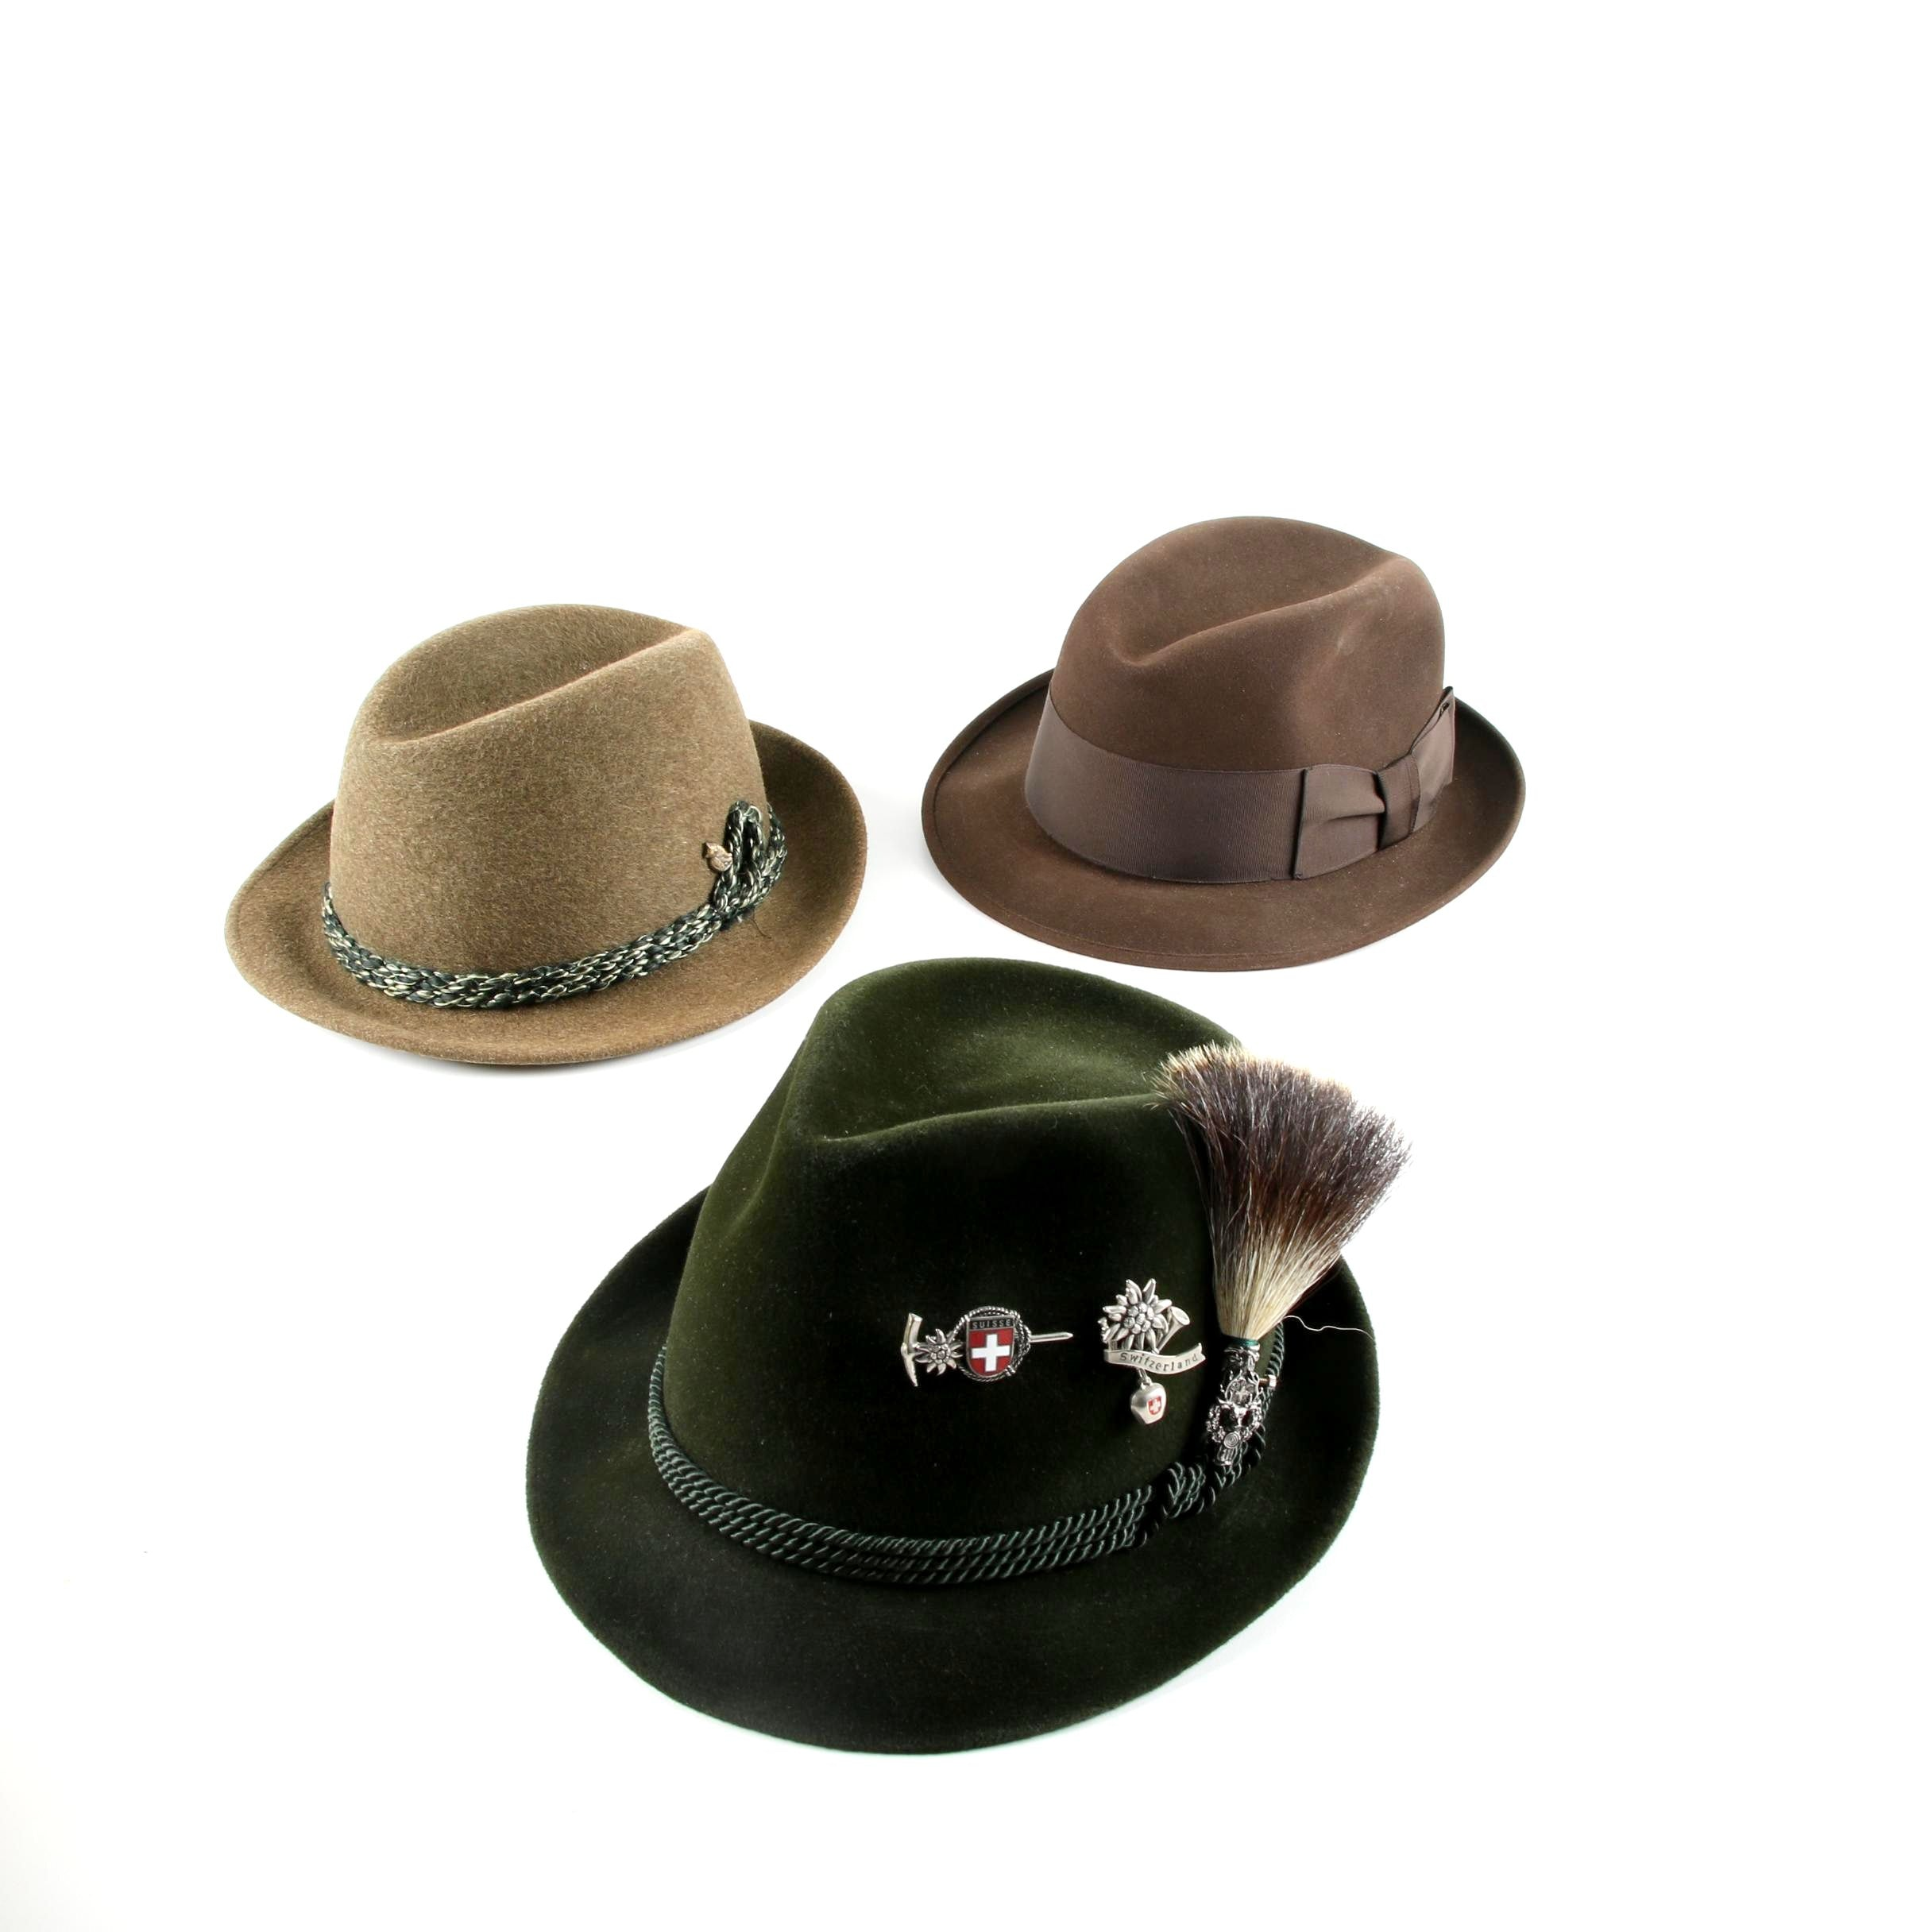 Men's Vintage Felted Fedora Hats and Tyrolean Hat with Wild Boar Hair